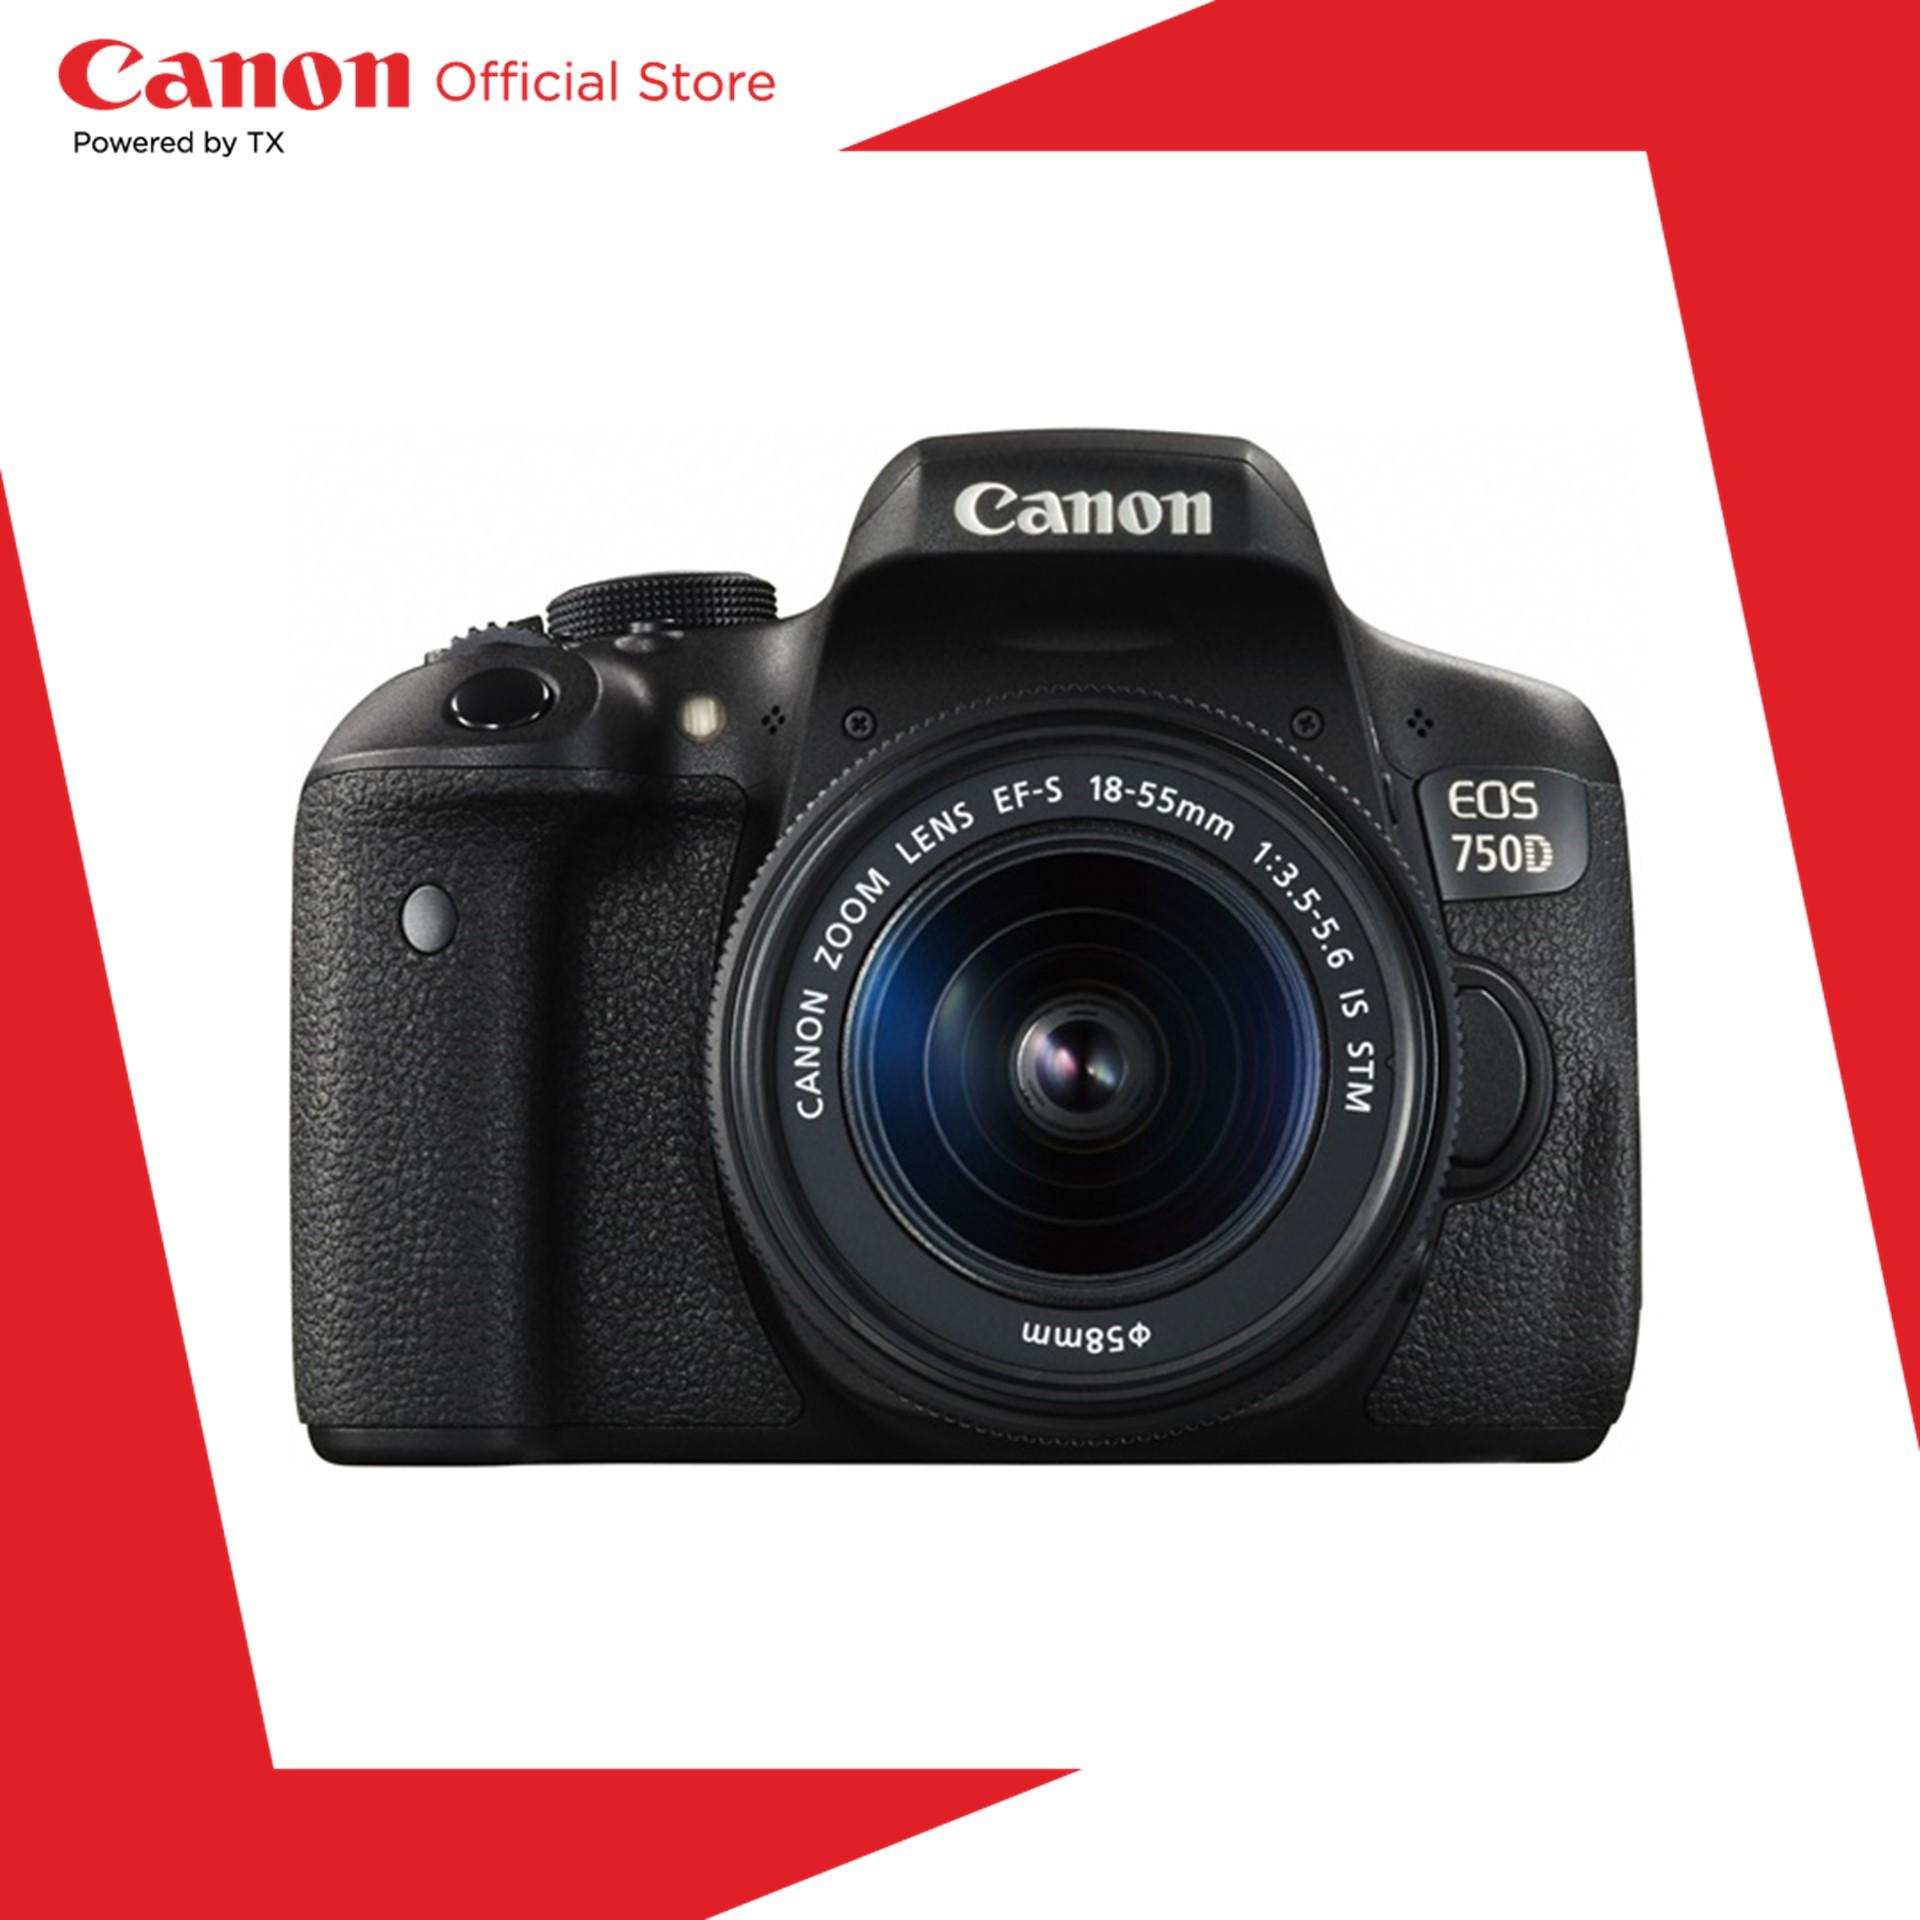 Canon Eos 750d (w) Dslr Camera With 18-55 Is Stm Lens (24.2mp, 19 Af Points, Wi-Fi) By Canon Official Store.